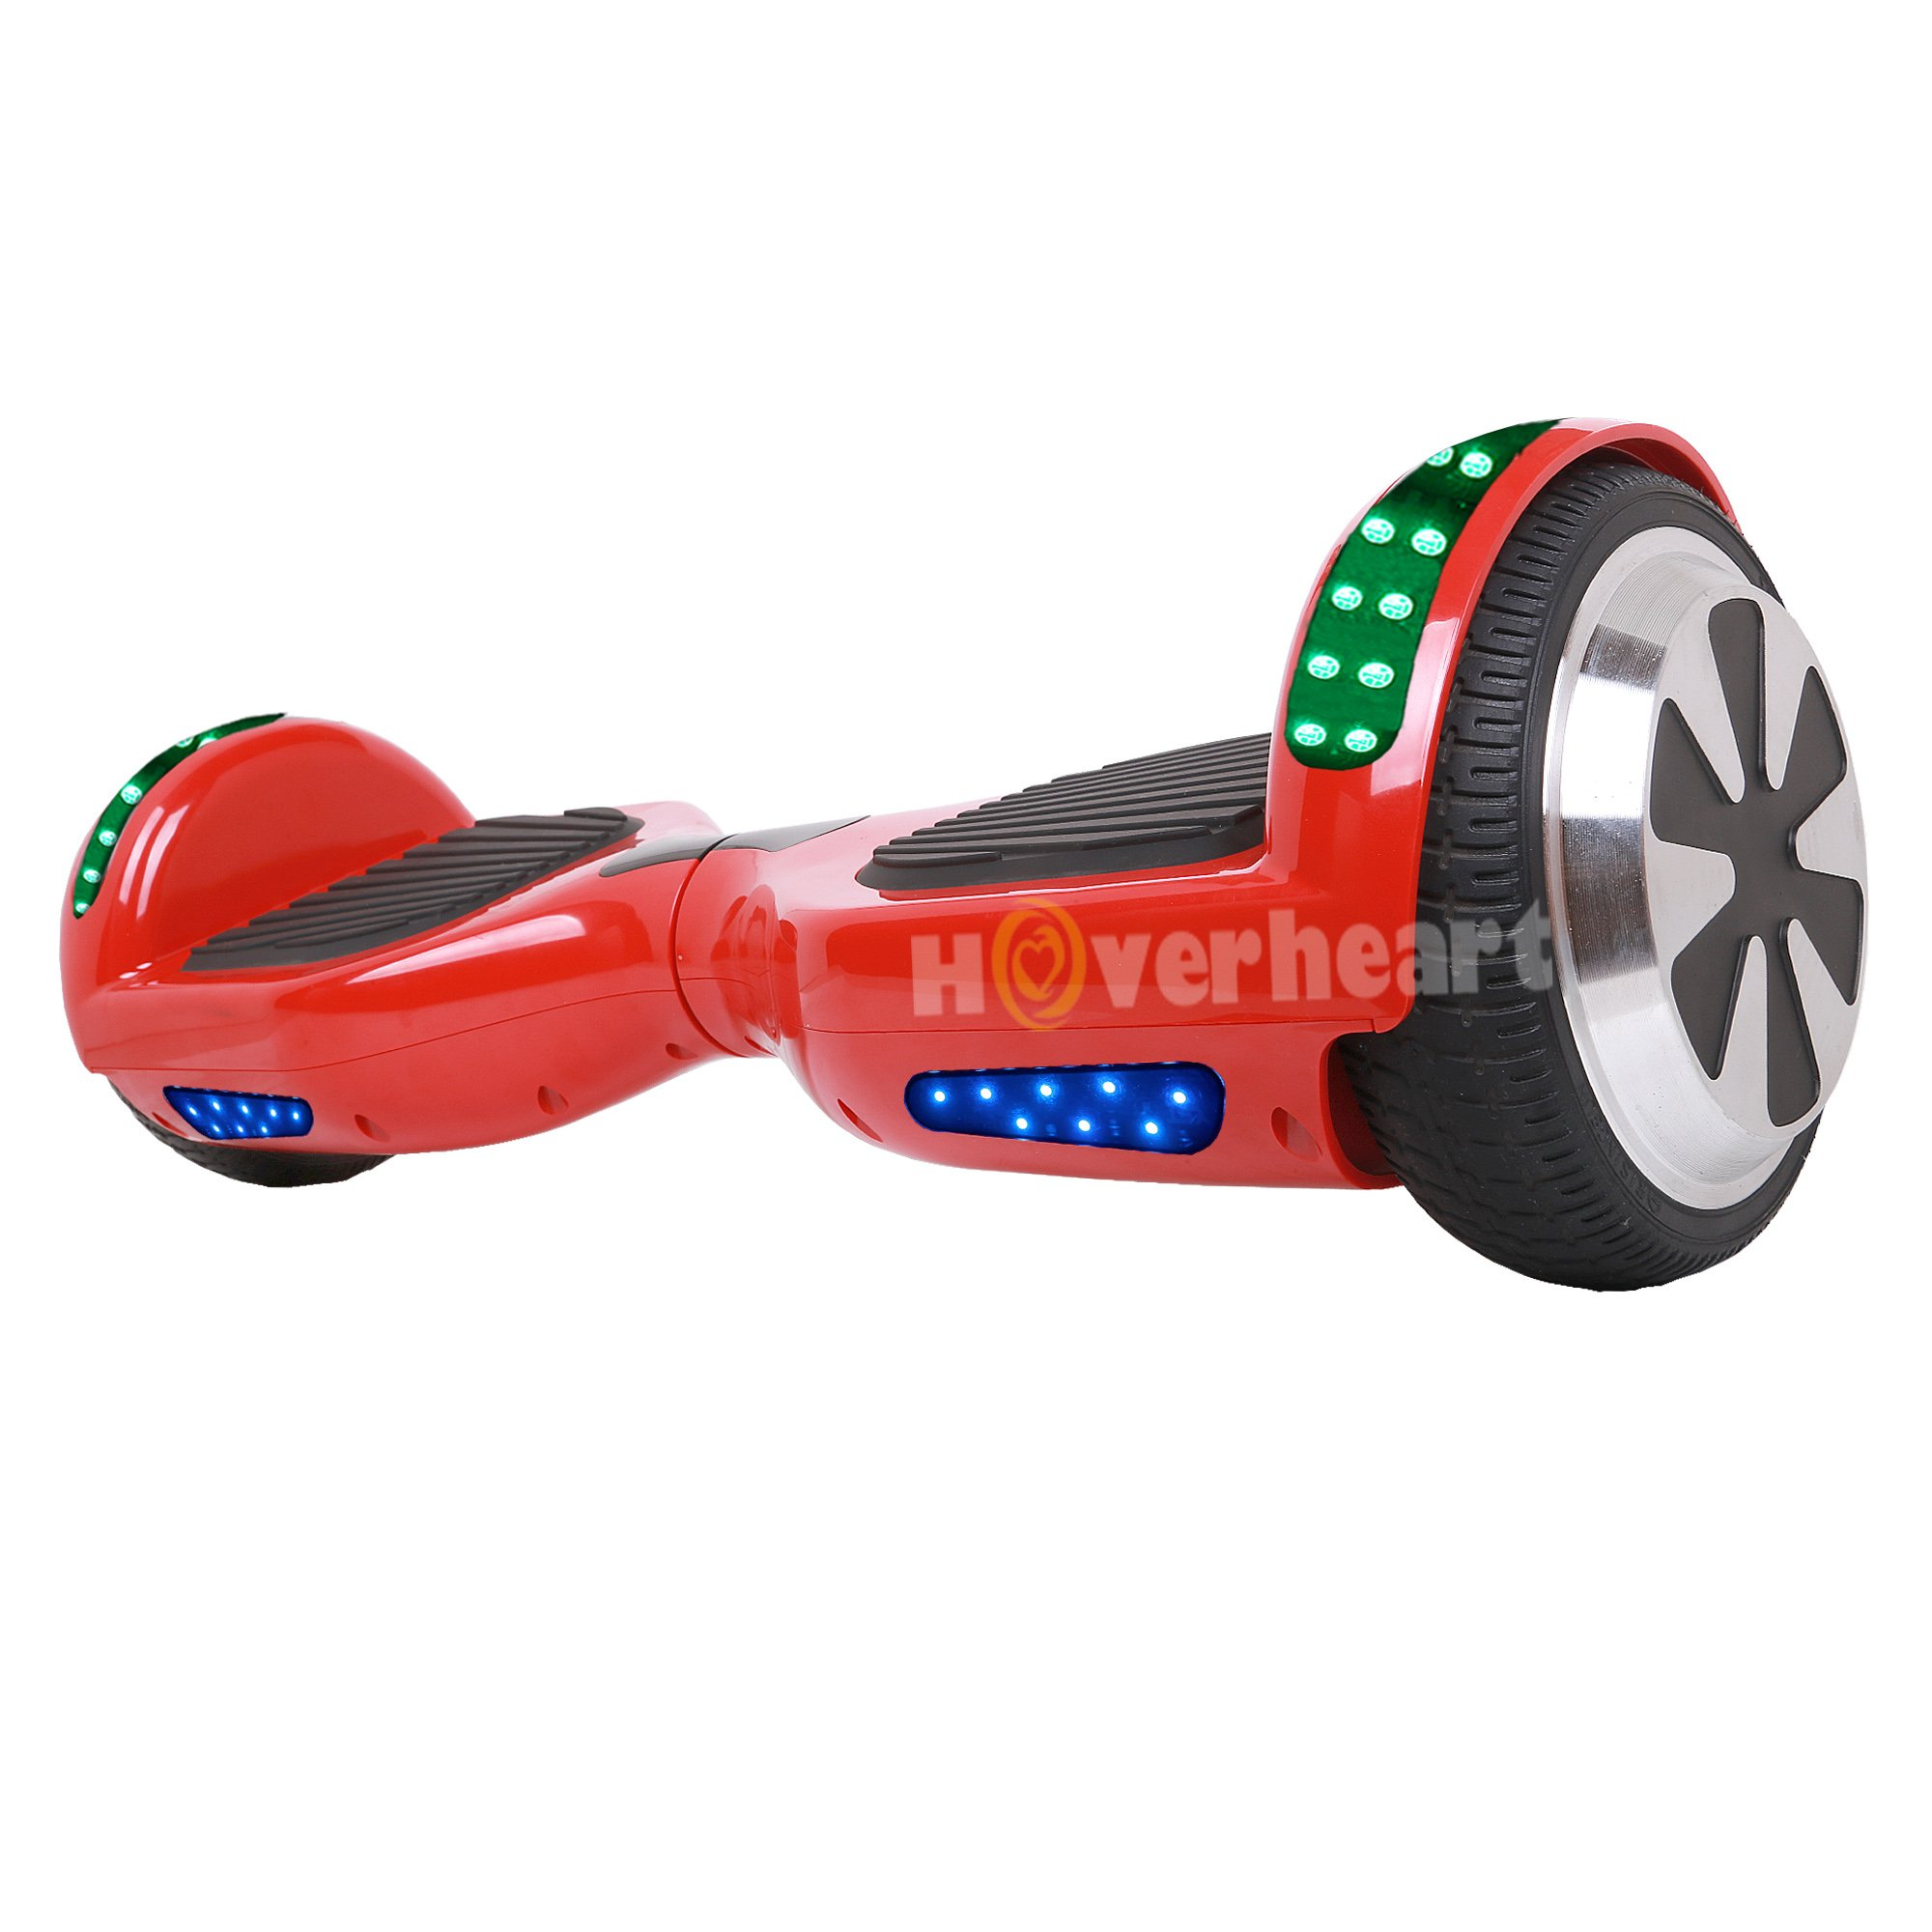 Hoverboard 6.5'' UL 2272 Listed Two-Wheel Self Balancing Electric Scooter with Top LED Light And Bluetooth Speaker (Red)